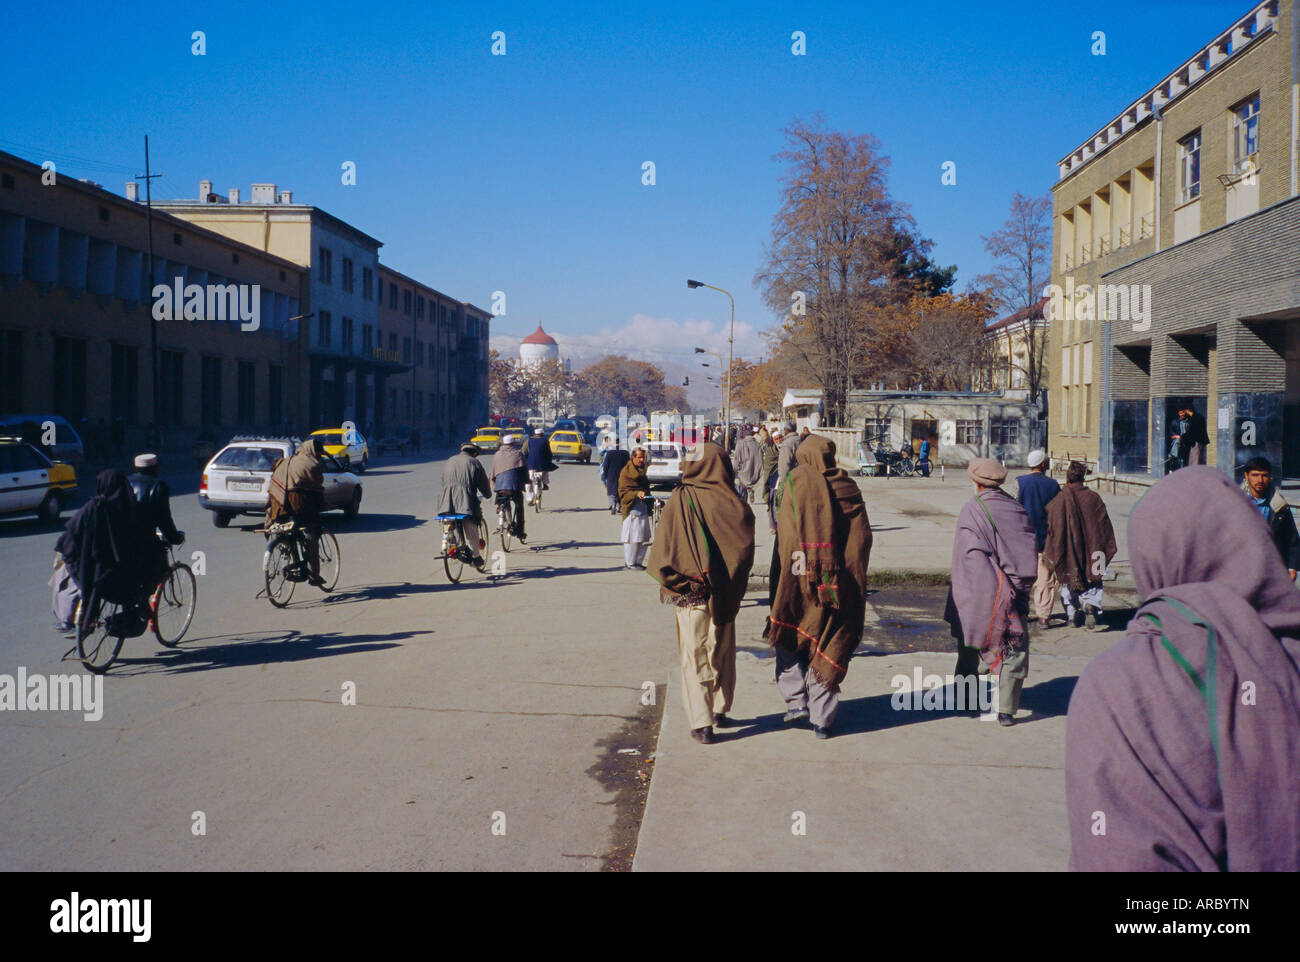 Street scene, Kabul, Afghanistan Stock Photo